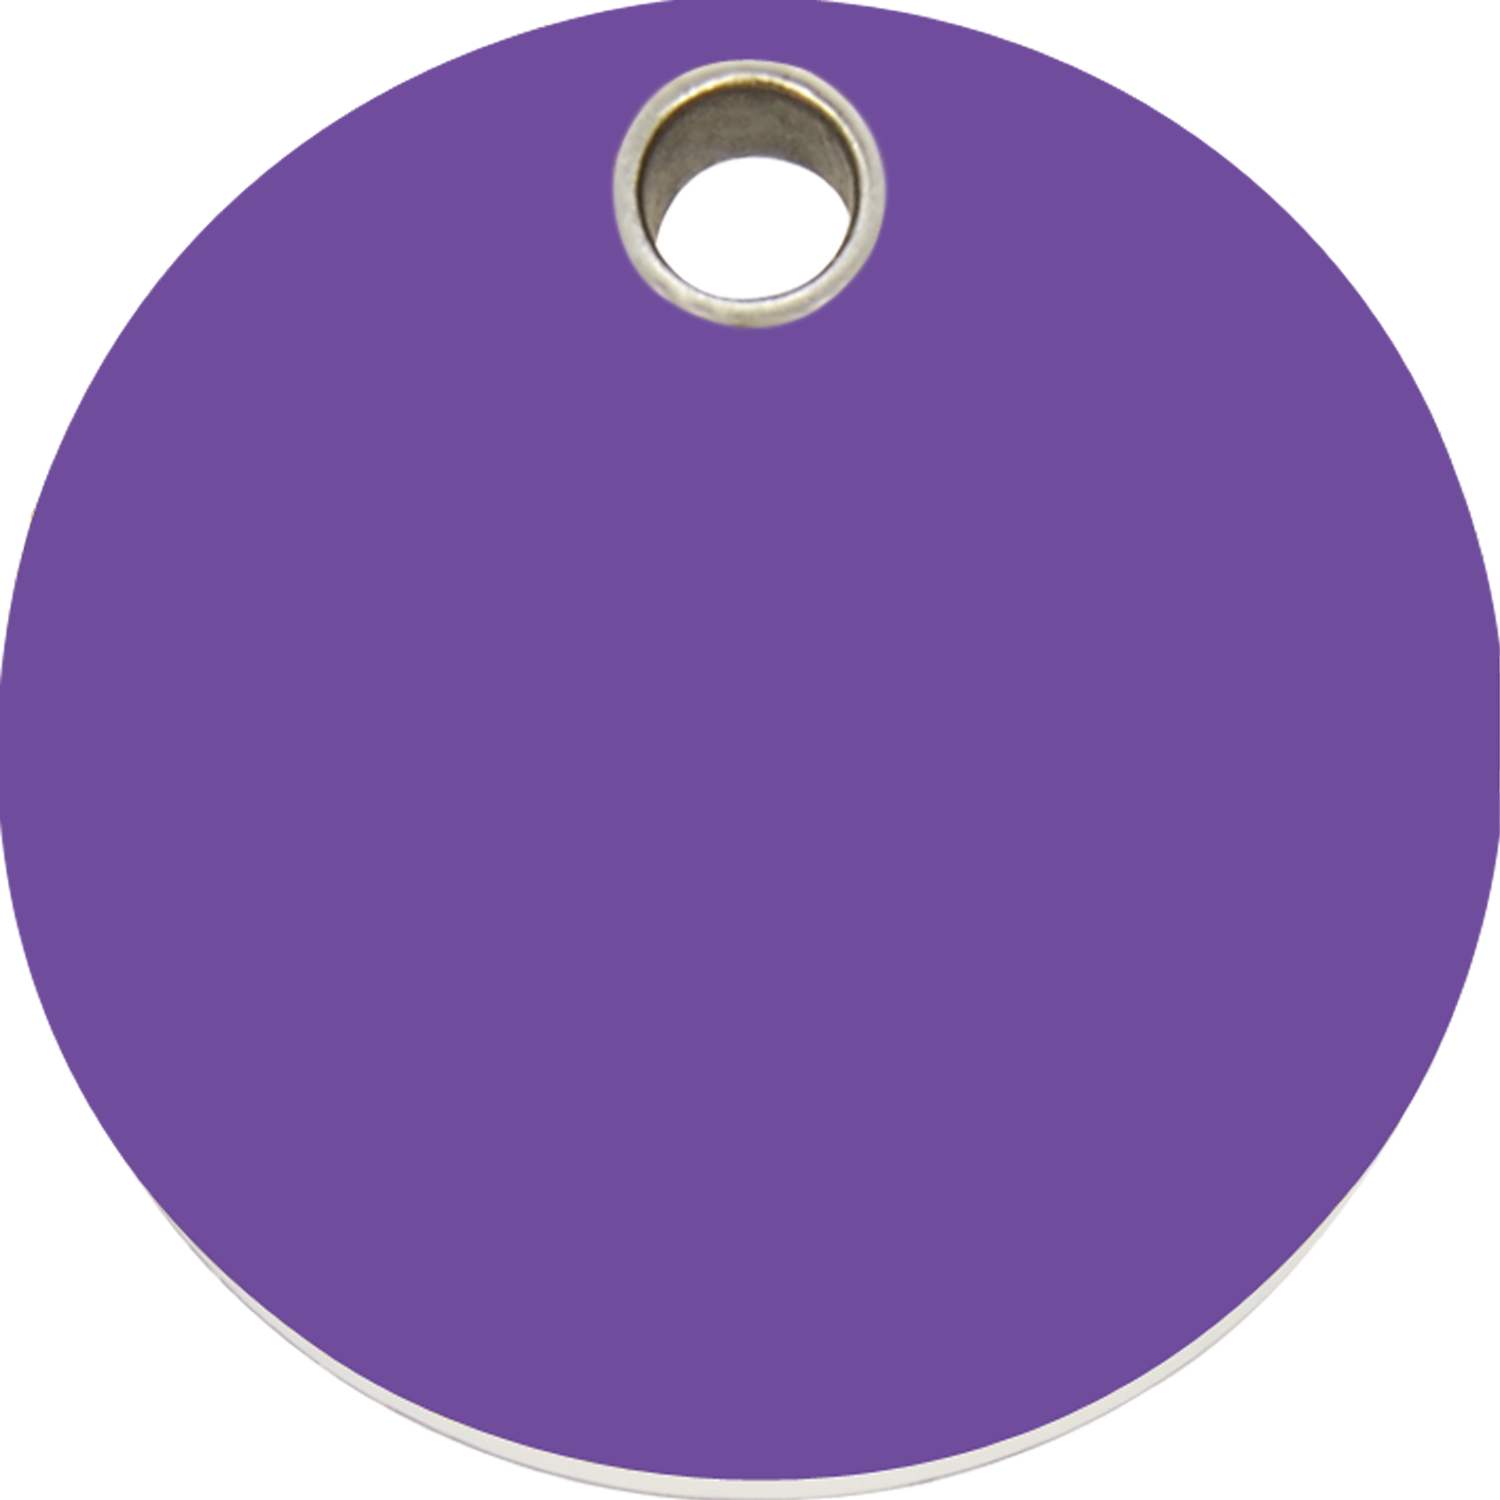 Circle clipart purple. Red dingo plastic tag